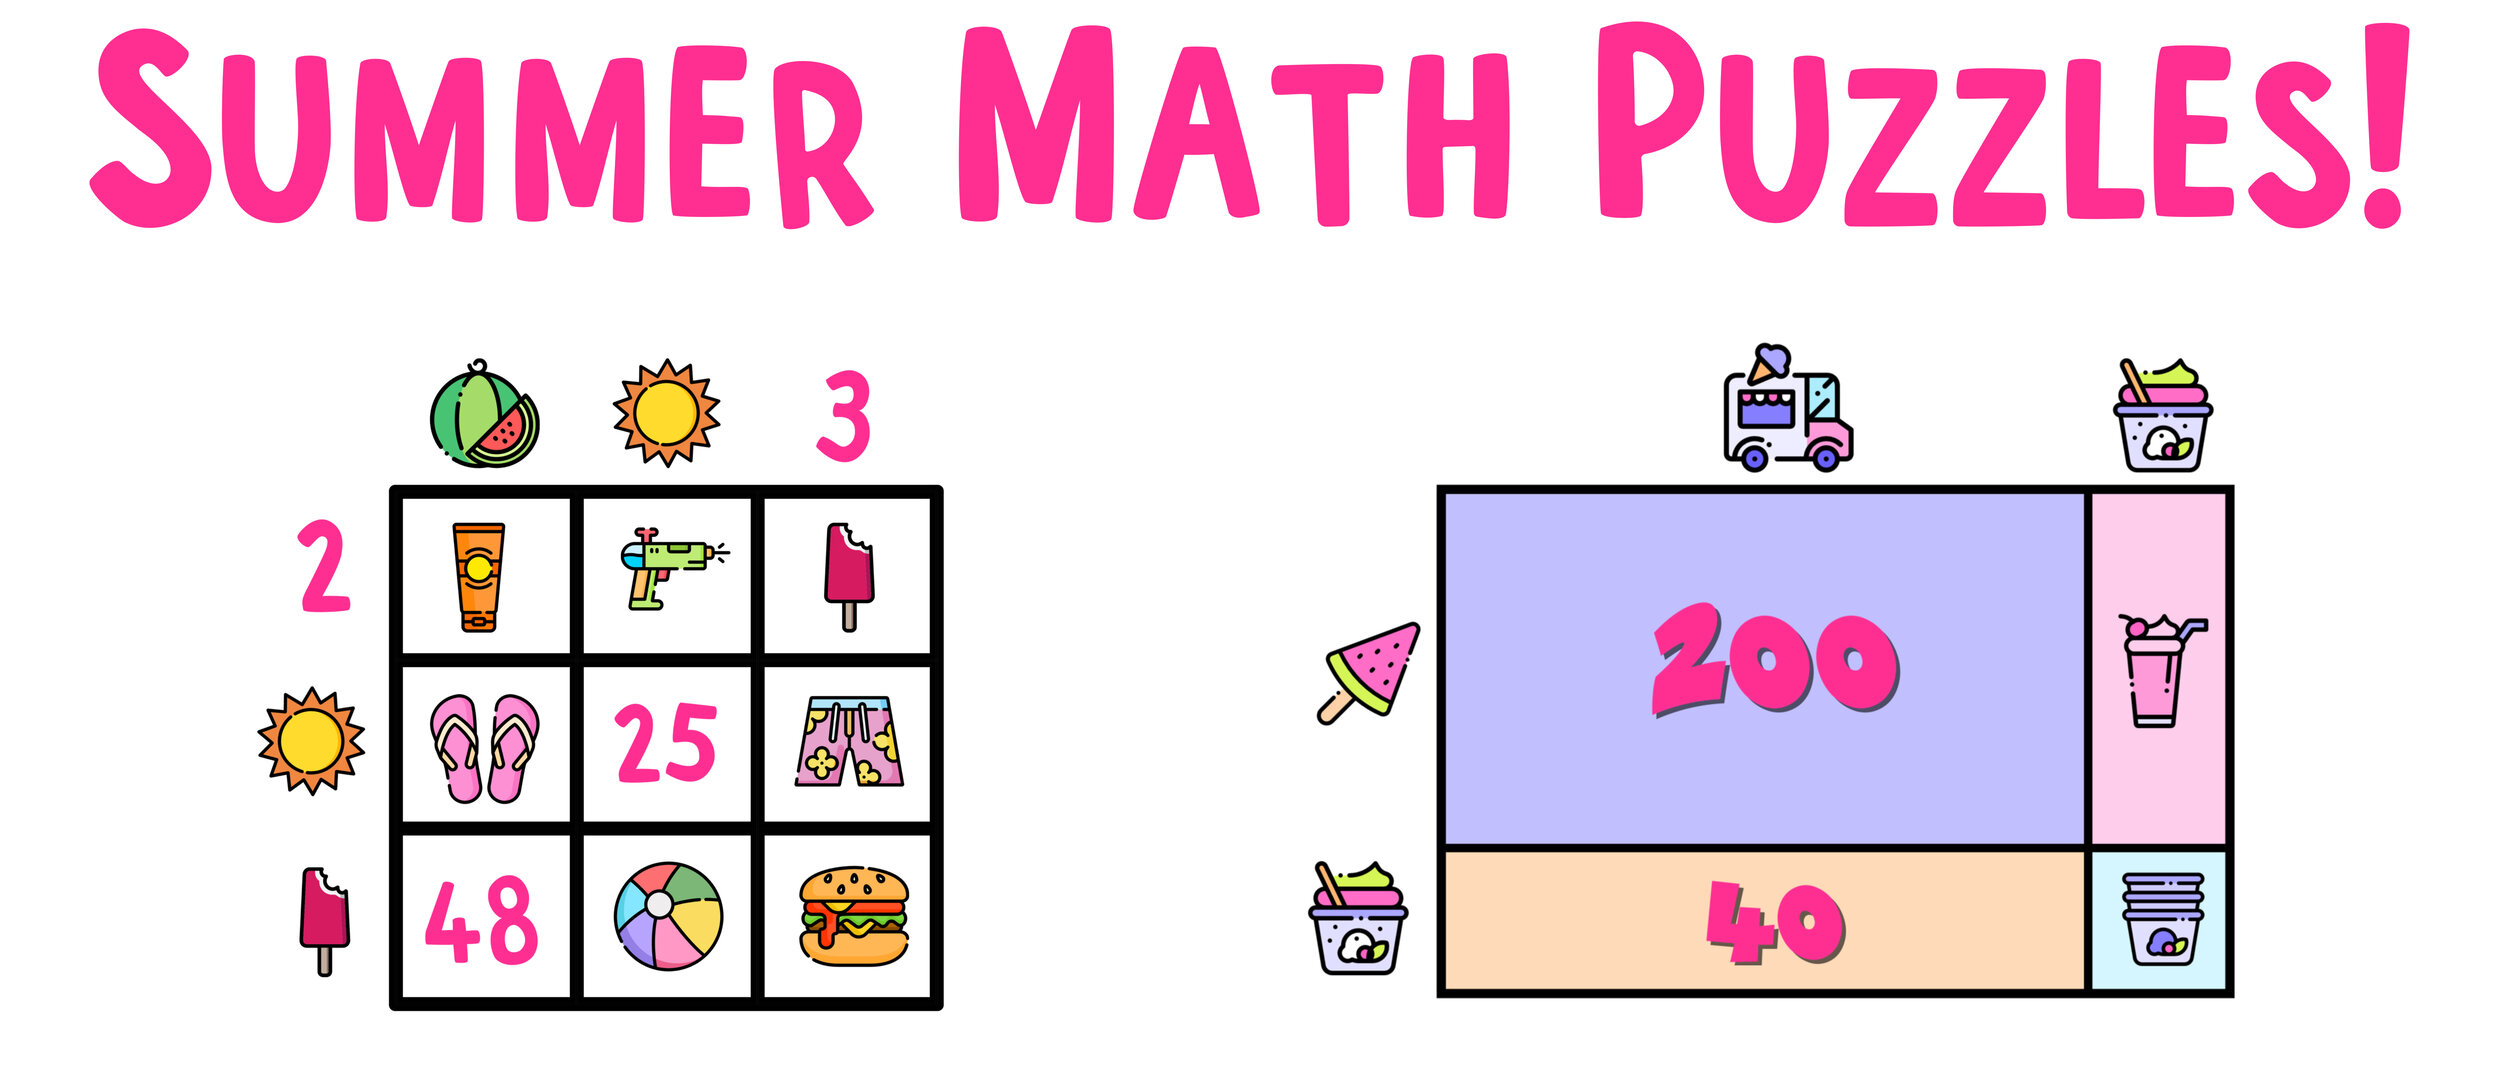 Can Your Students Solve These Summer Math Puzzles Mashup Math